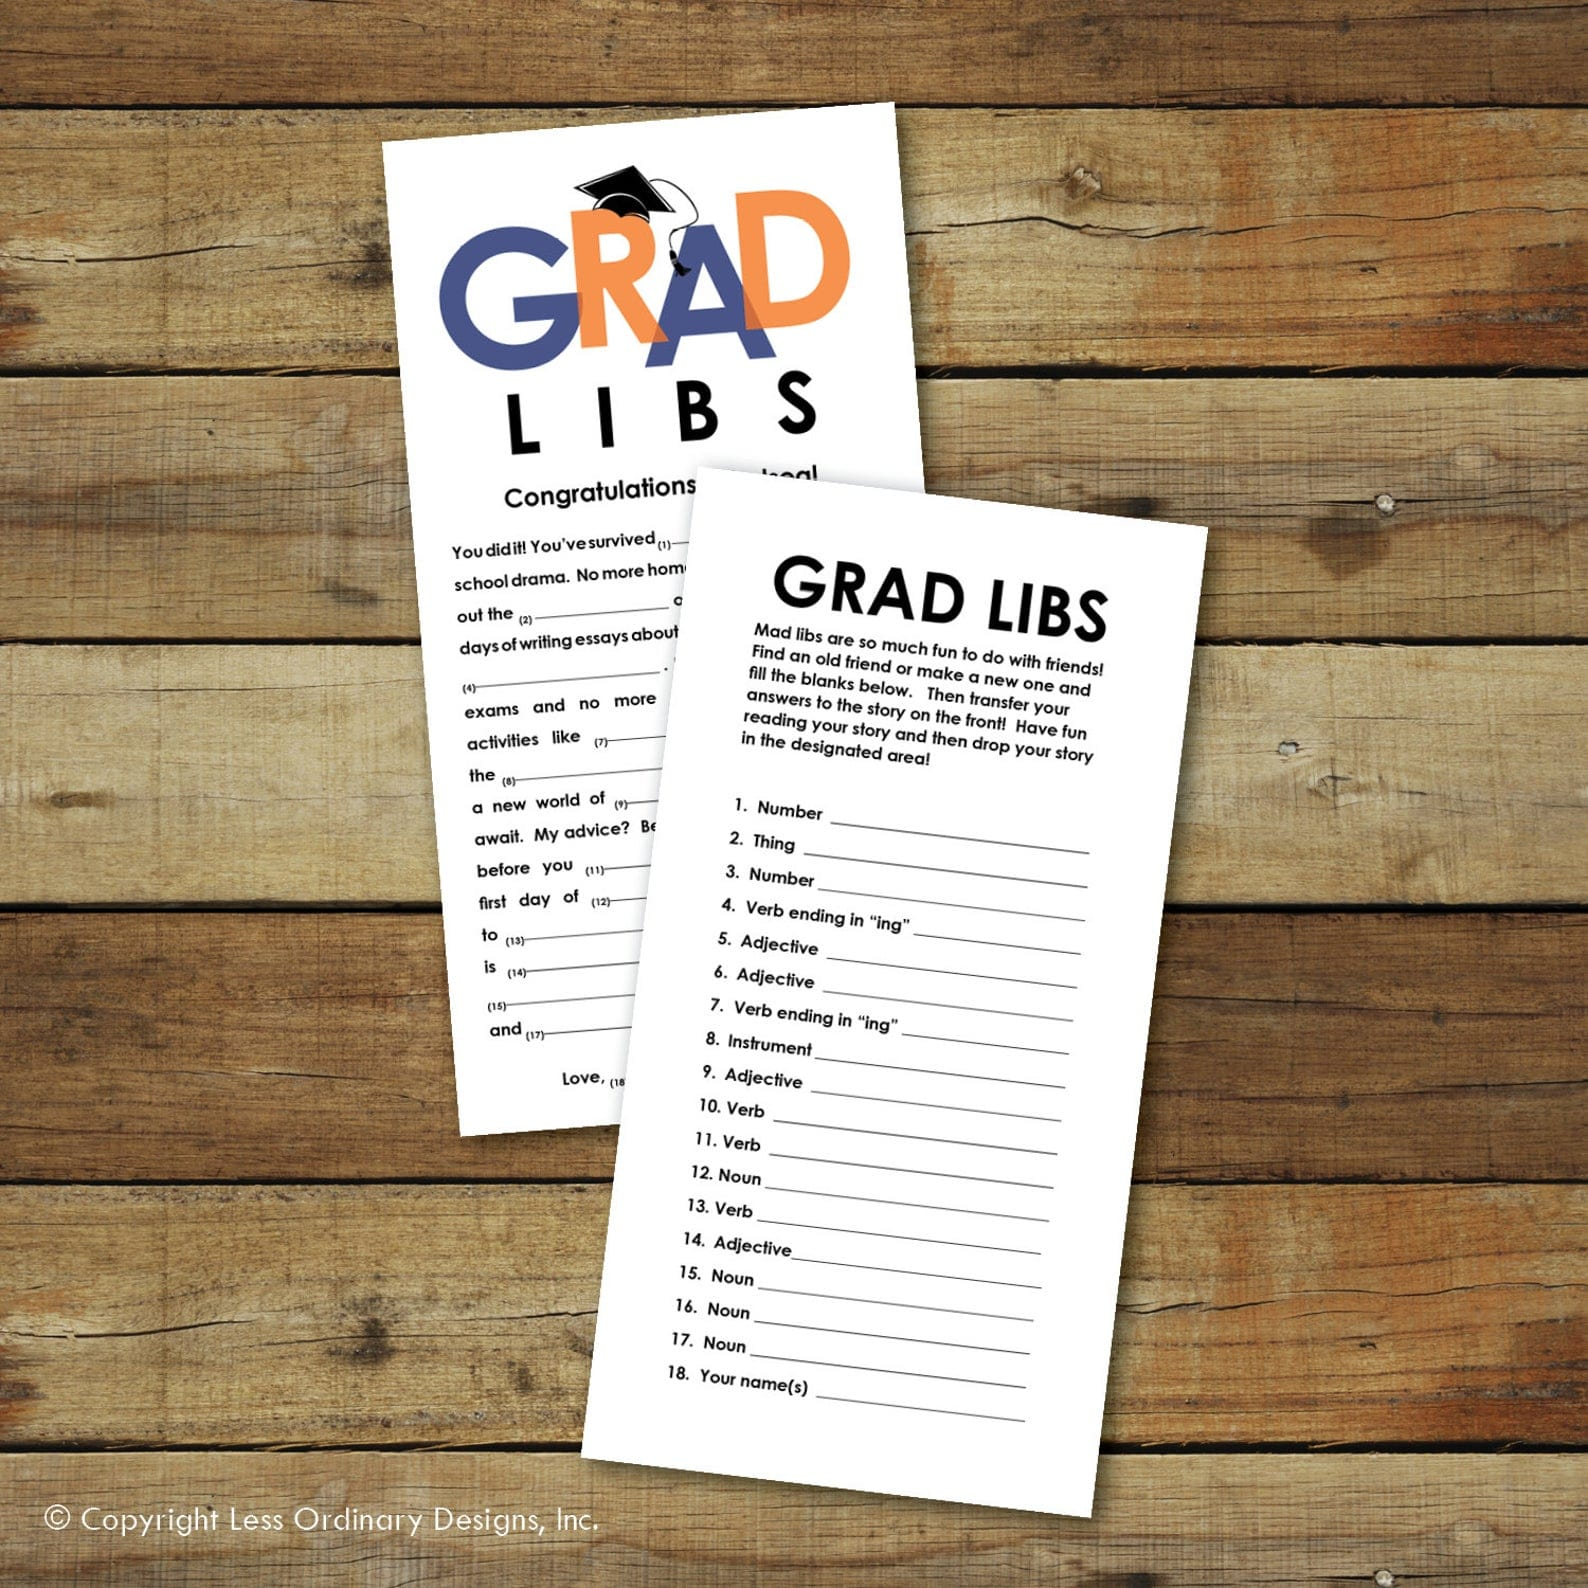 Graduation mad libs on white paper